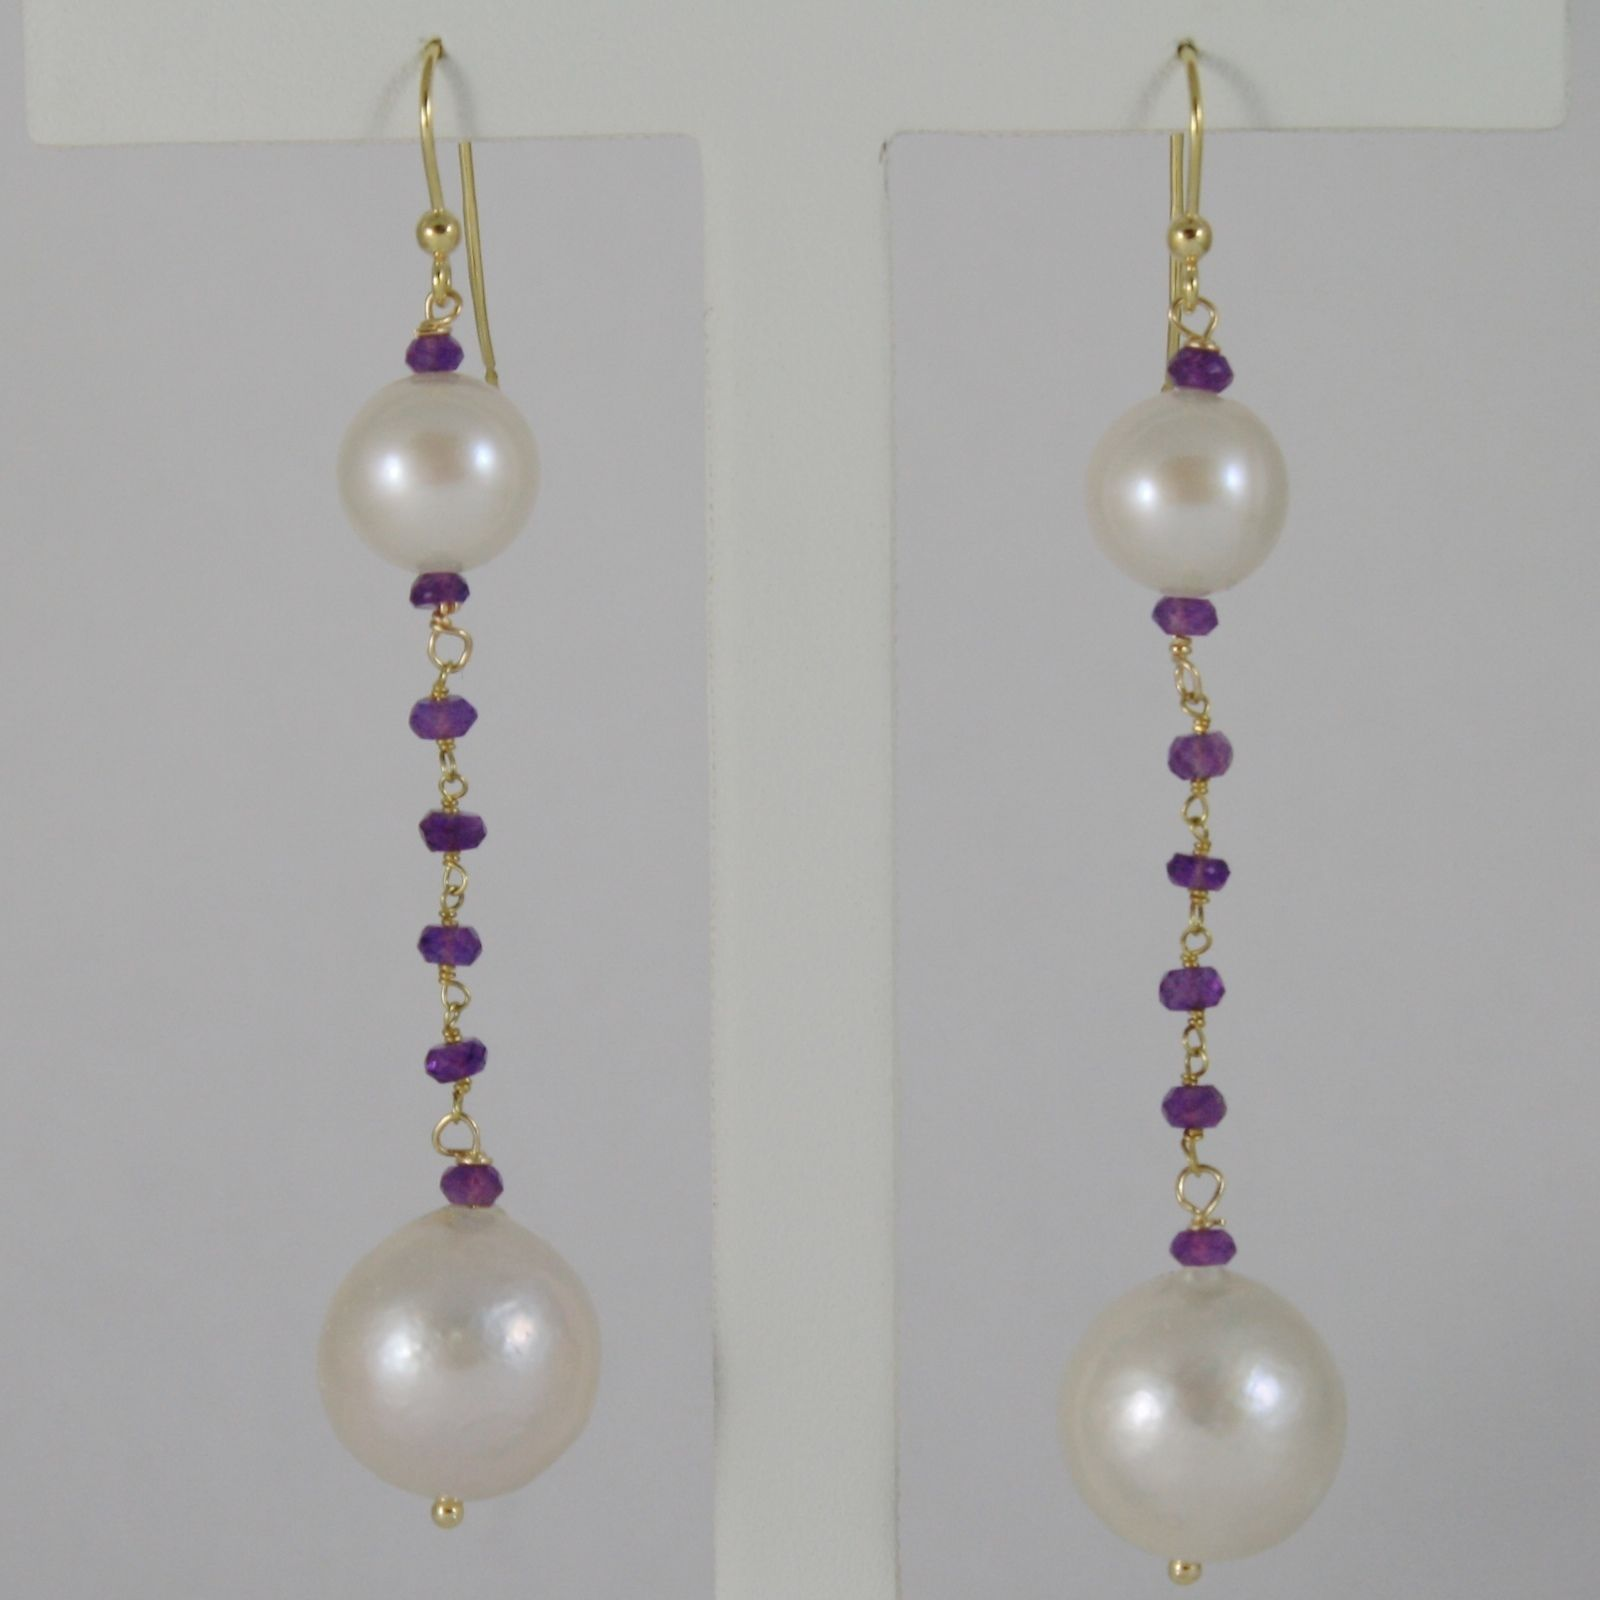 18K YELLOW GOLD PENDANT EARRINGS BIG 13 MM WHITE FW PEARLS AND PURPLE AMETHYST